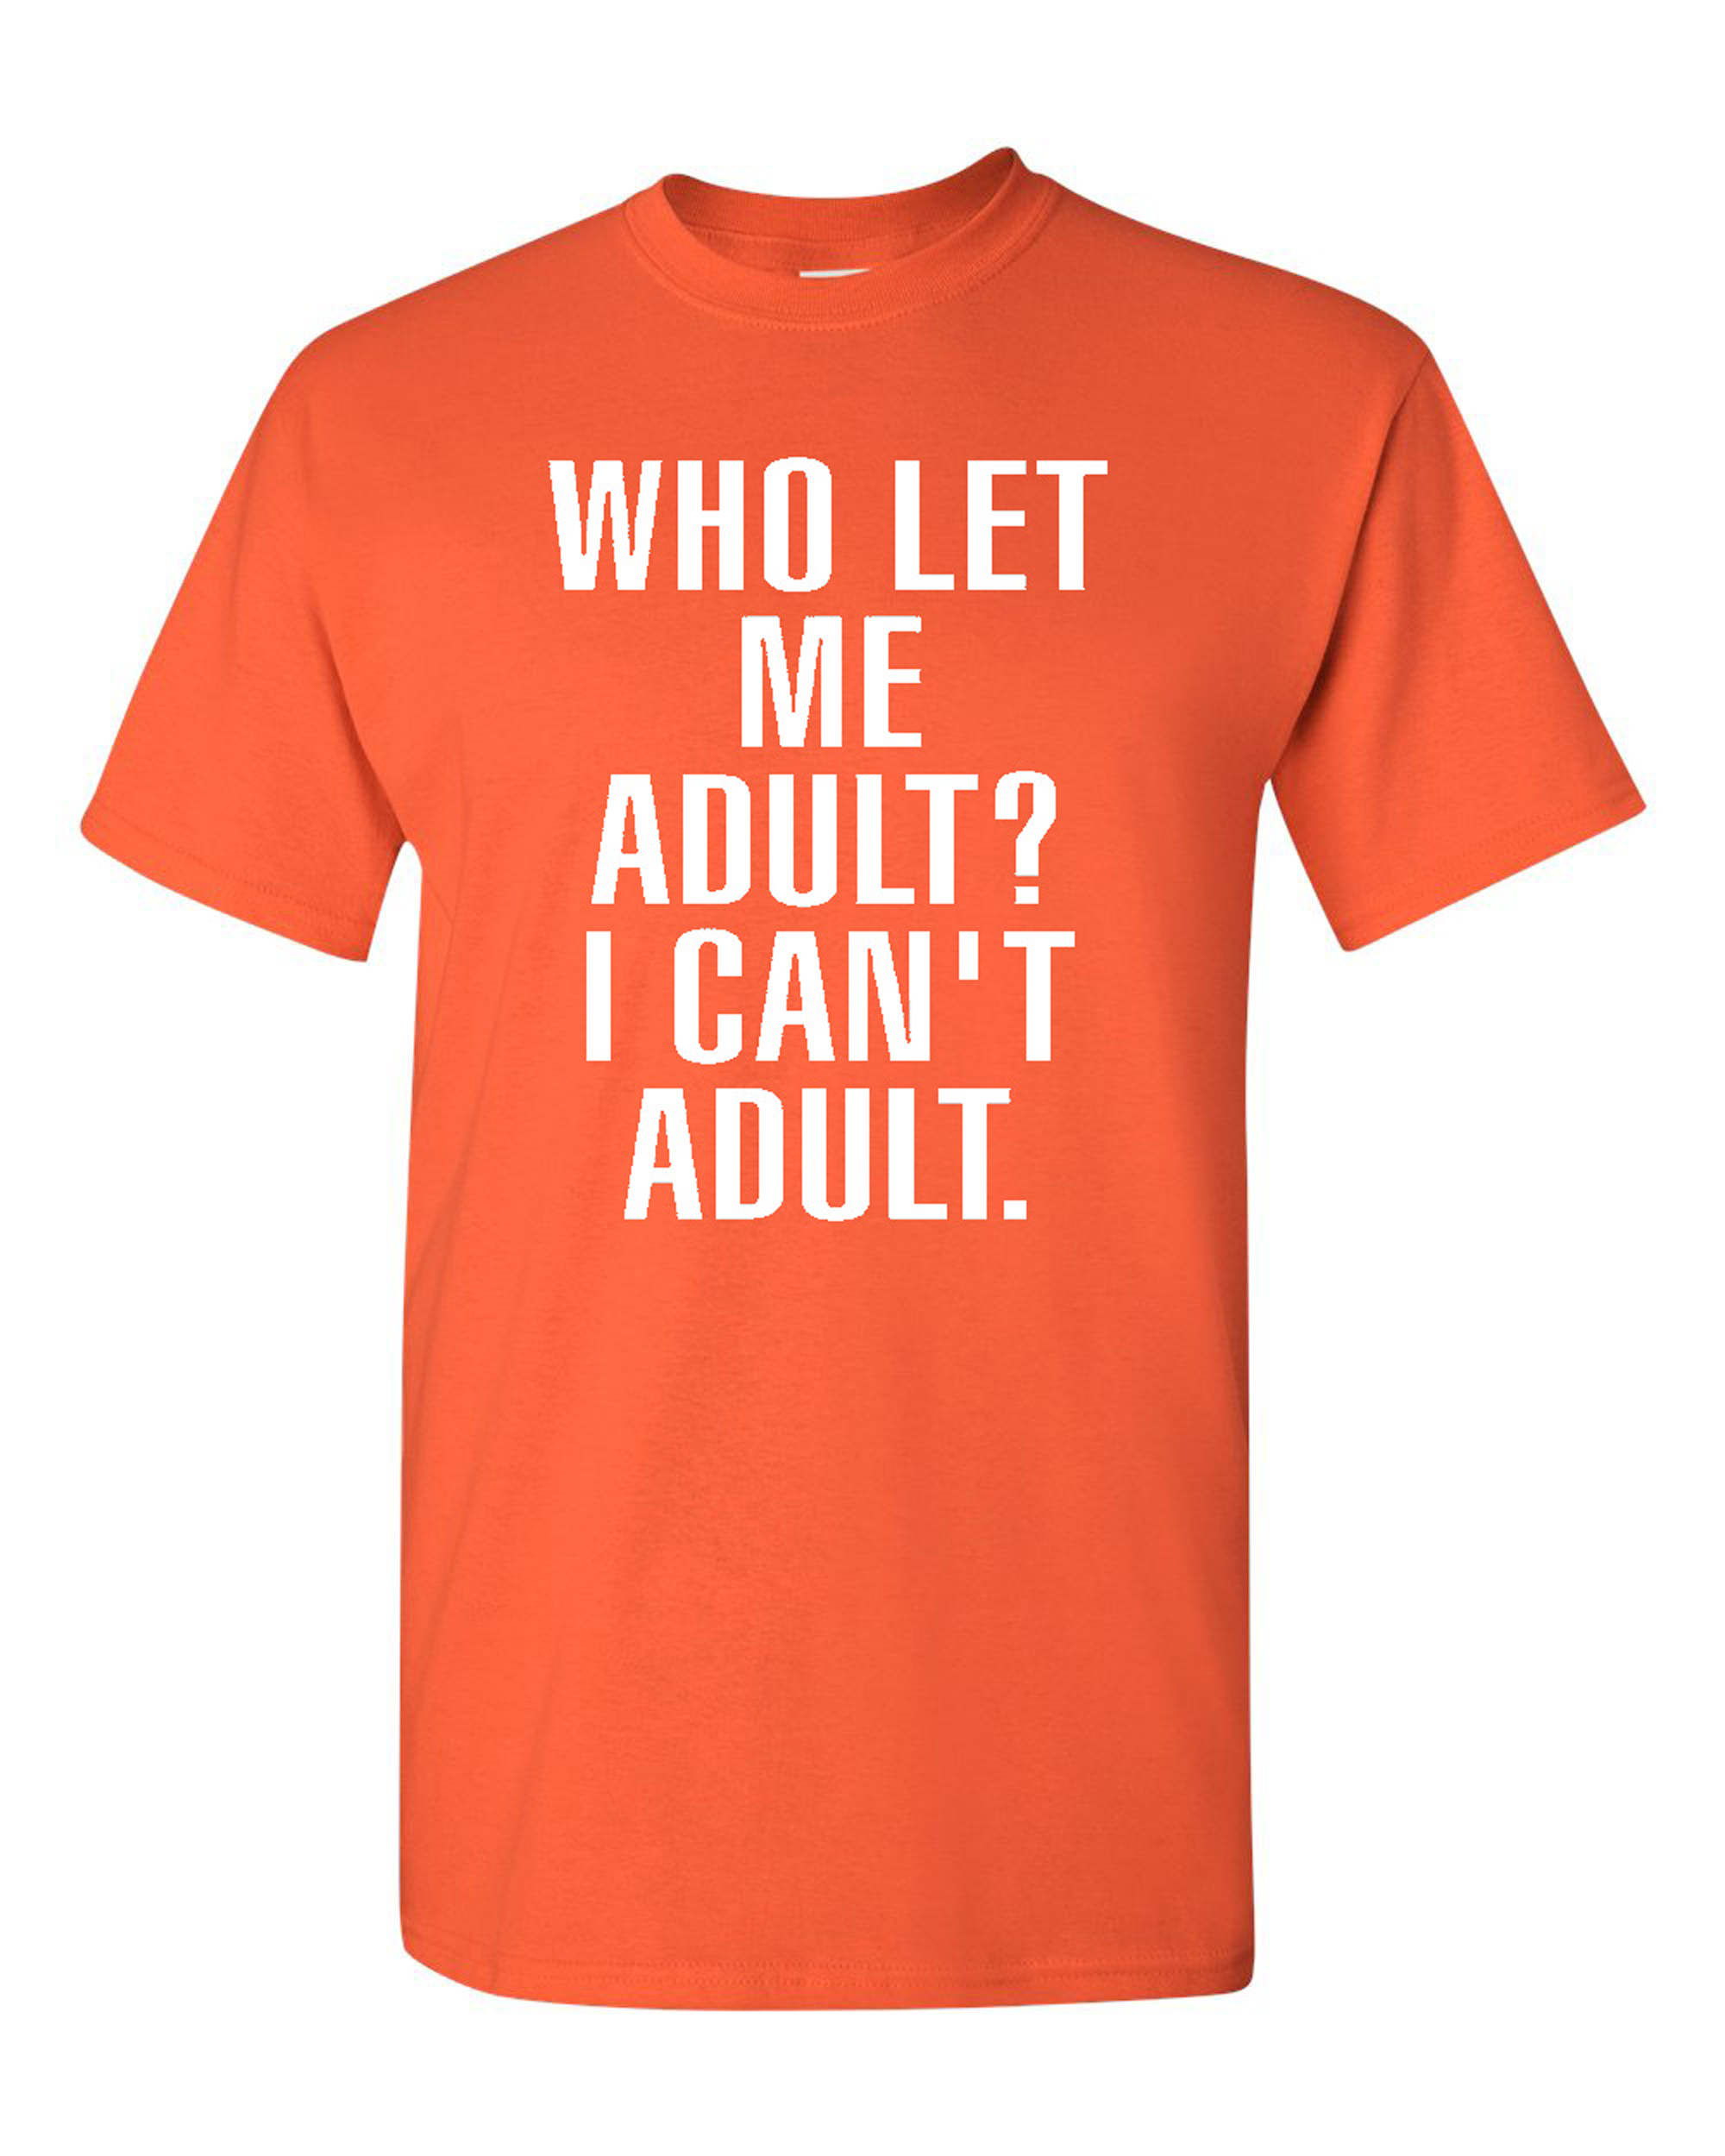 Who Let Me Adult? I Can't Adult. T-Shirt Tee